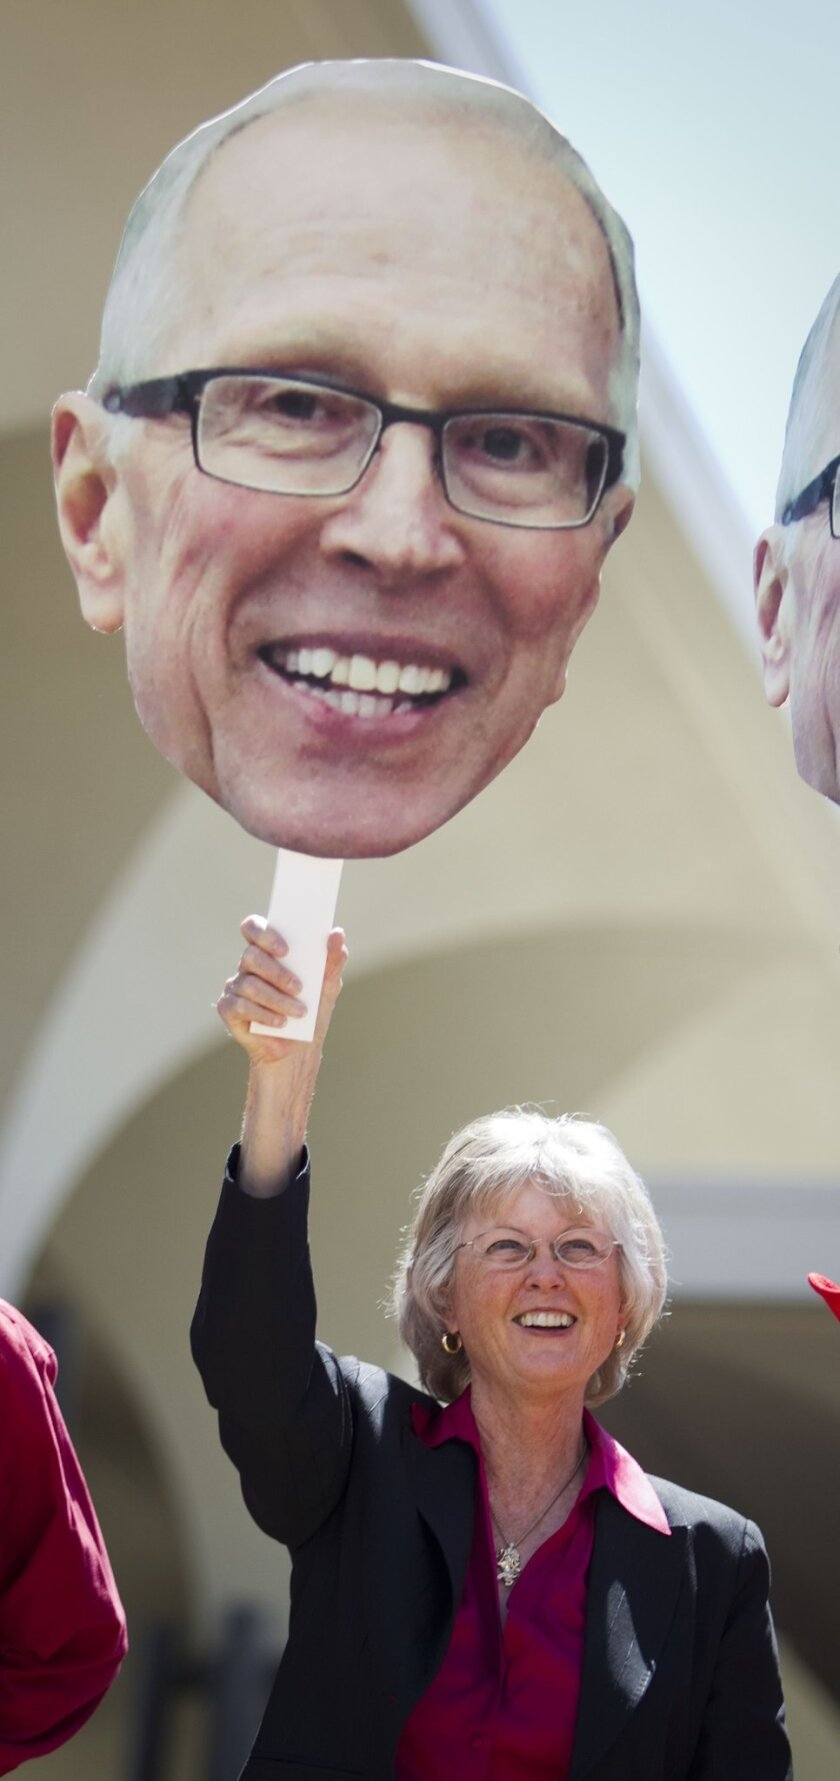 SDSU grad and sports fan Dianne Jacob waves a Steve Fisher sign at a celebration for the Aztecs season in 2011.